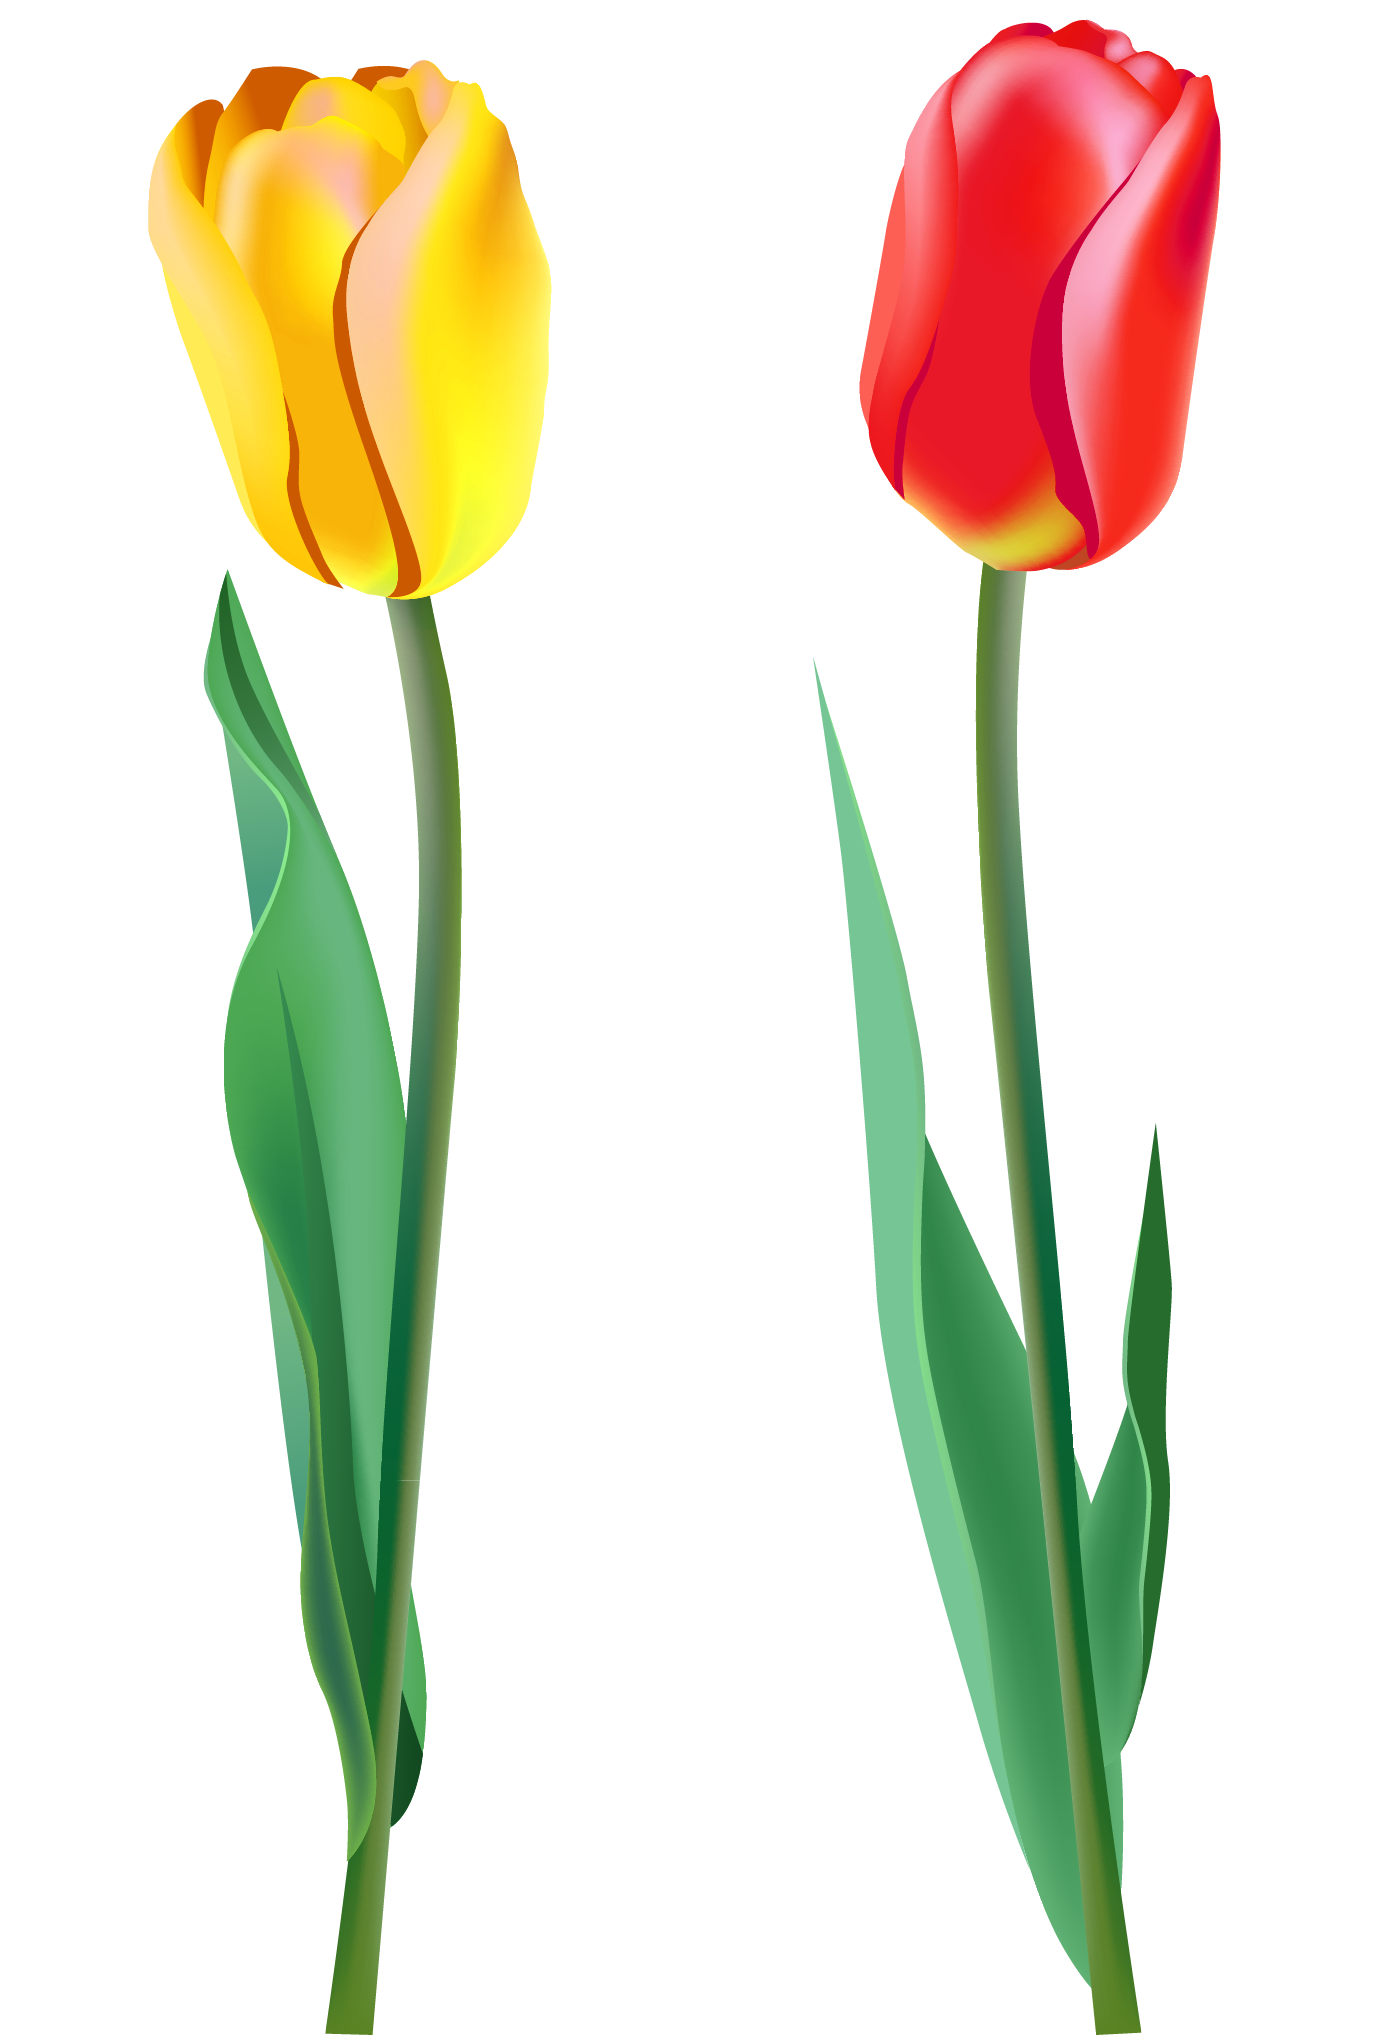 Flower clipart tulip. Png image purepng free